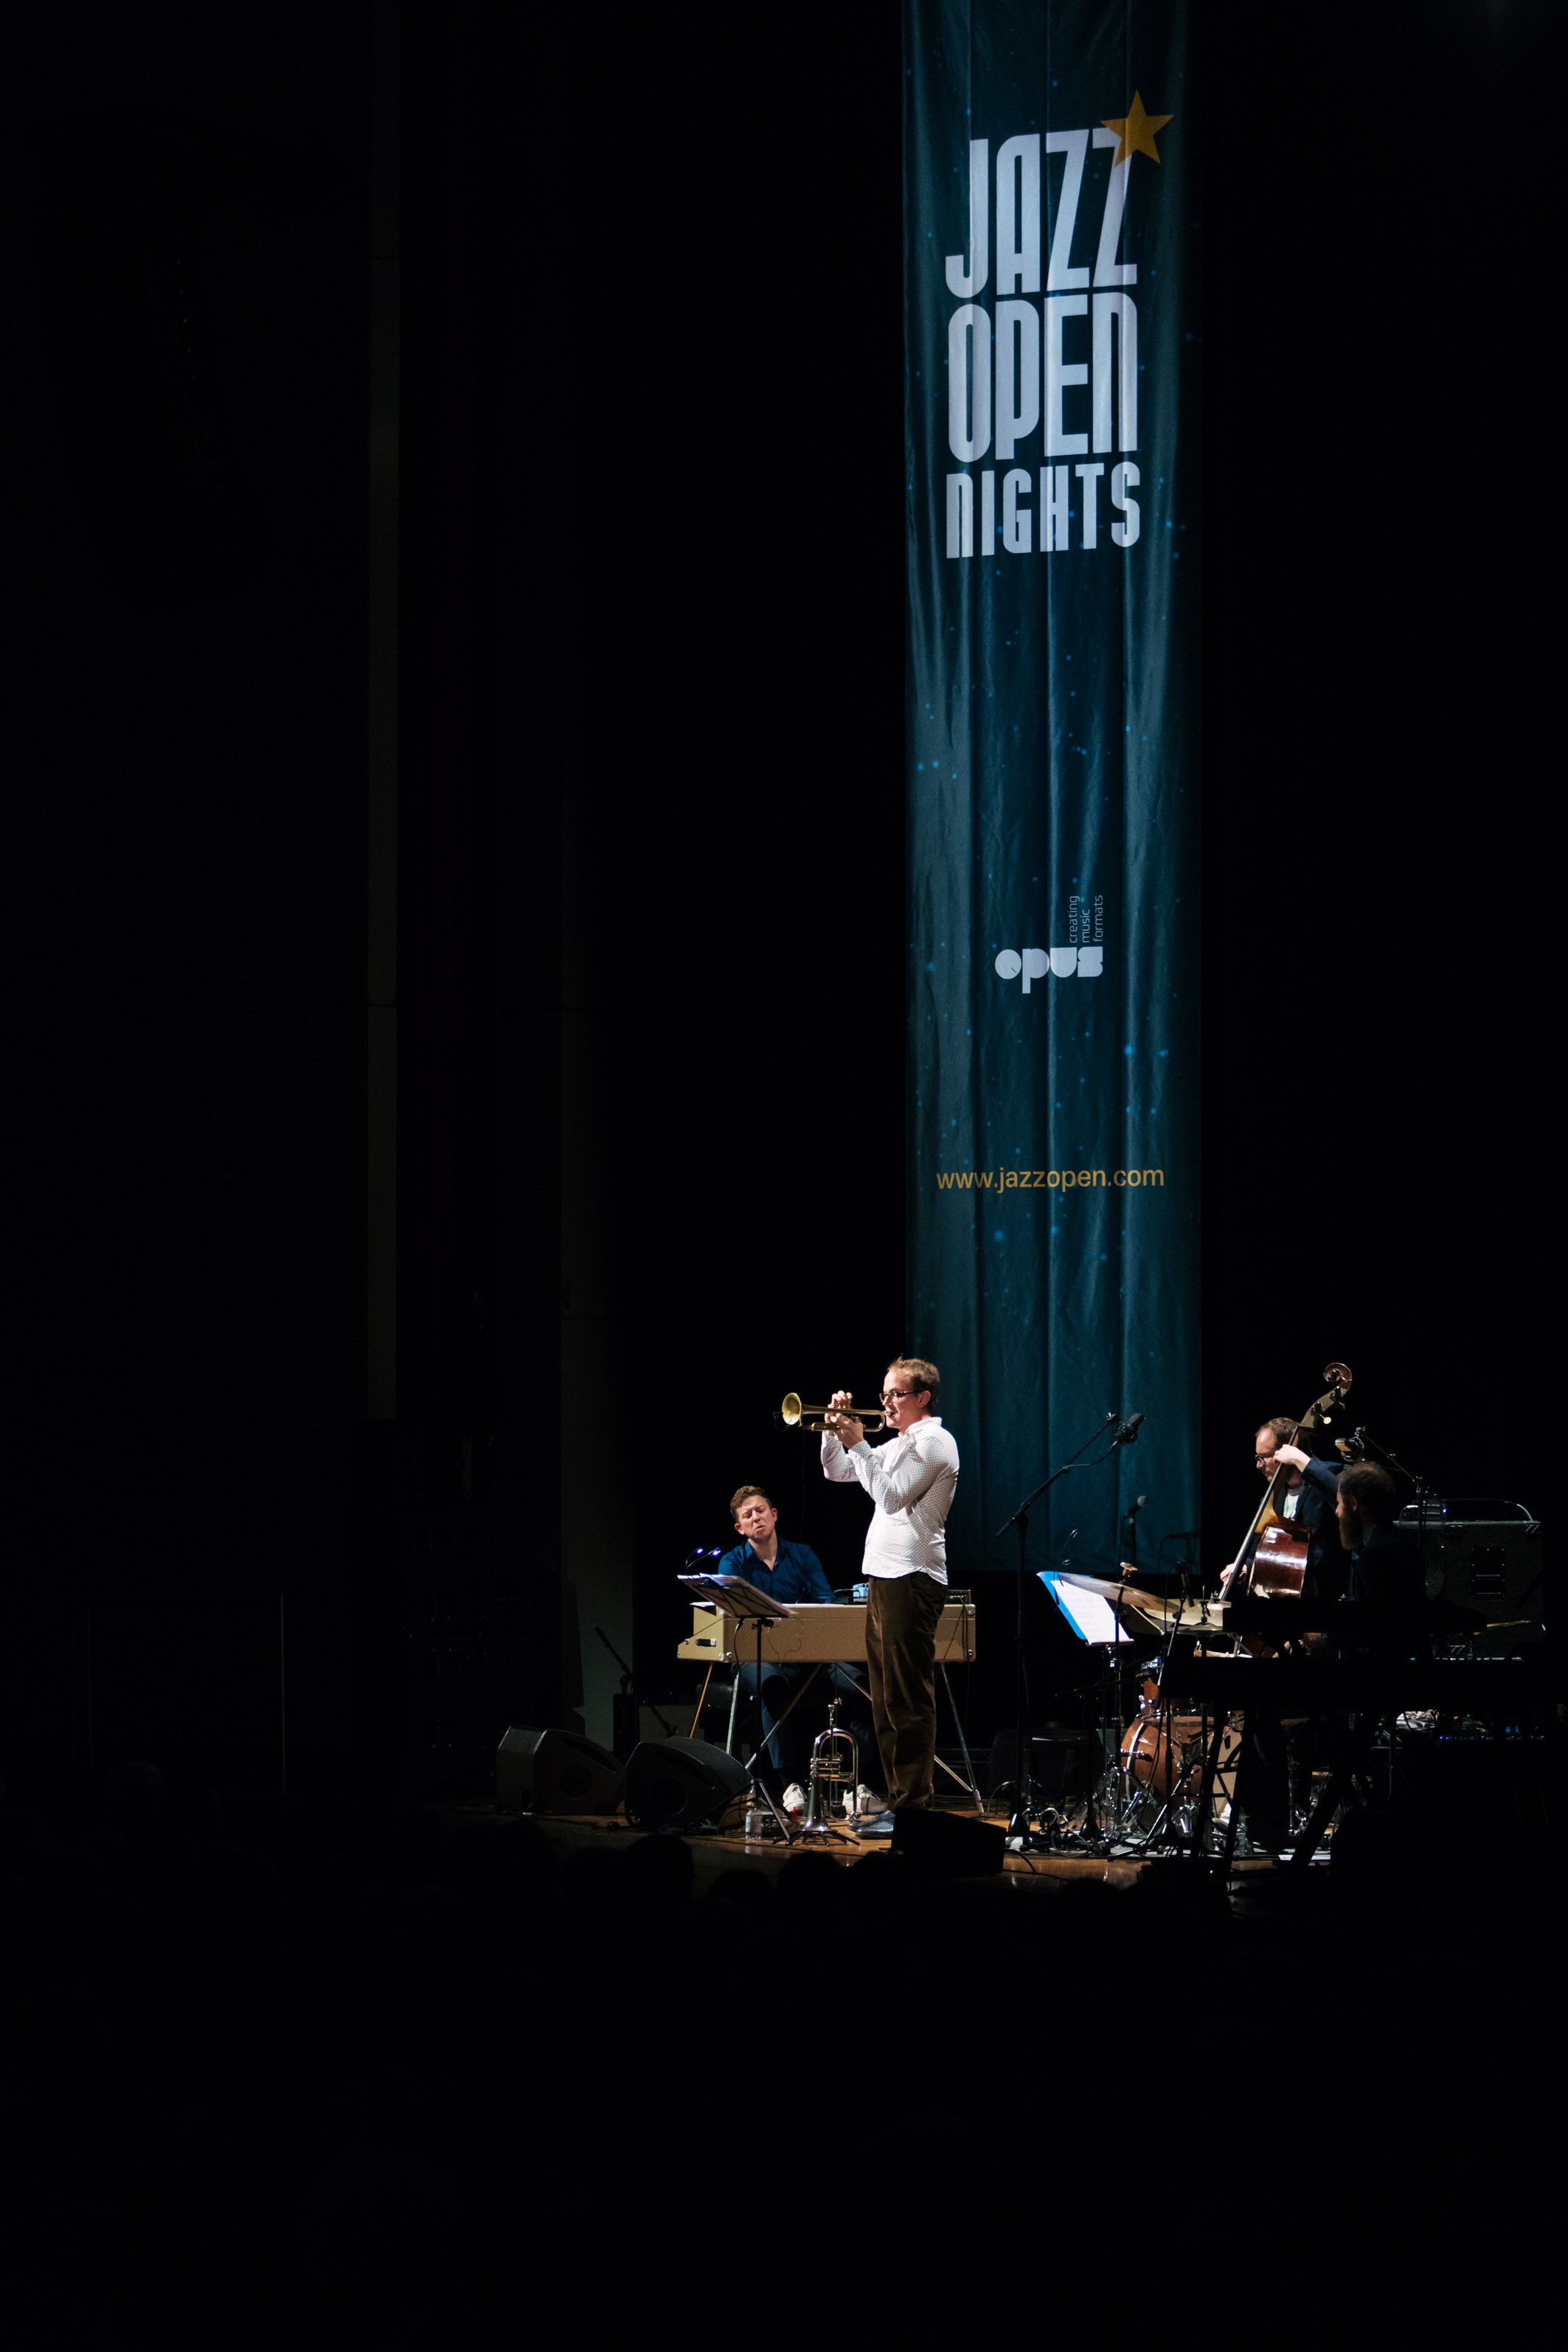 20171102_jazzopen-night-23.jpg